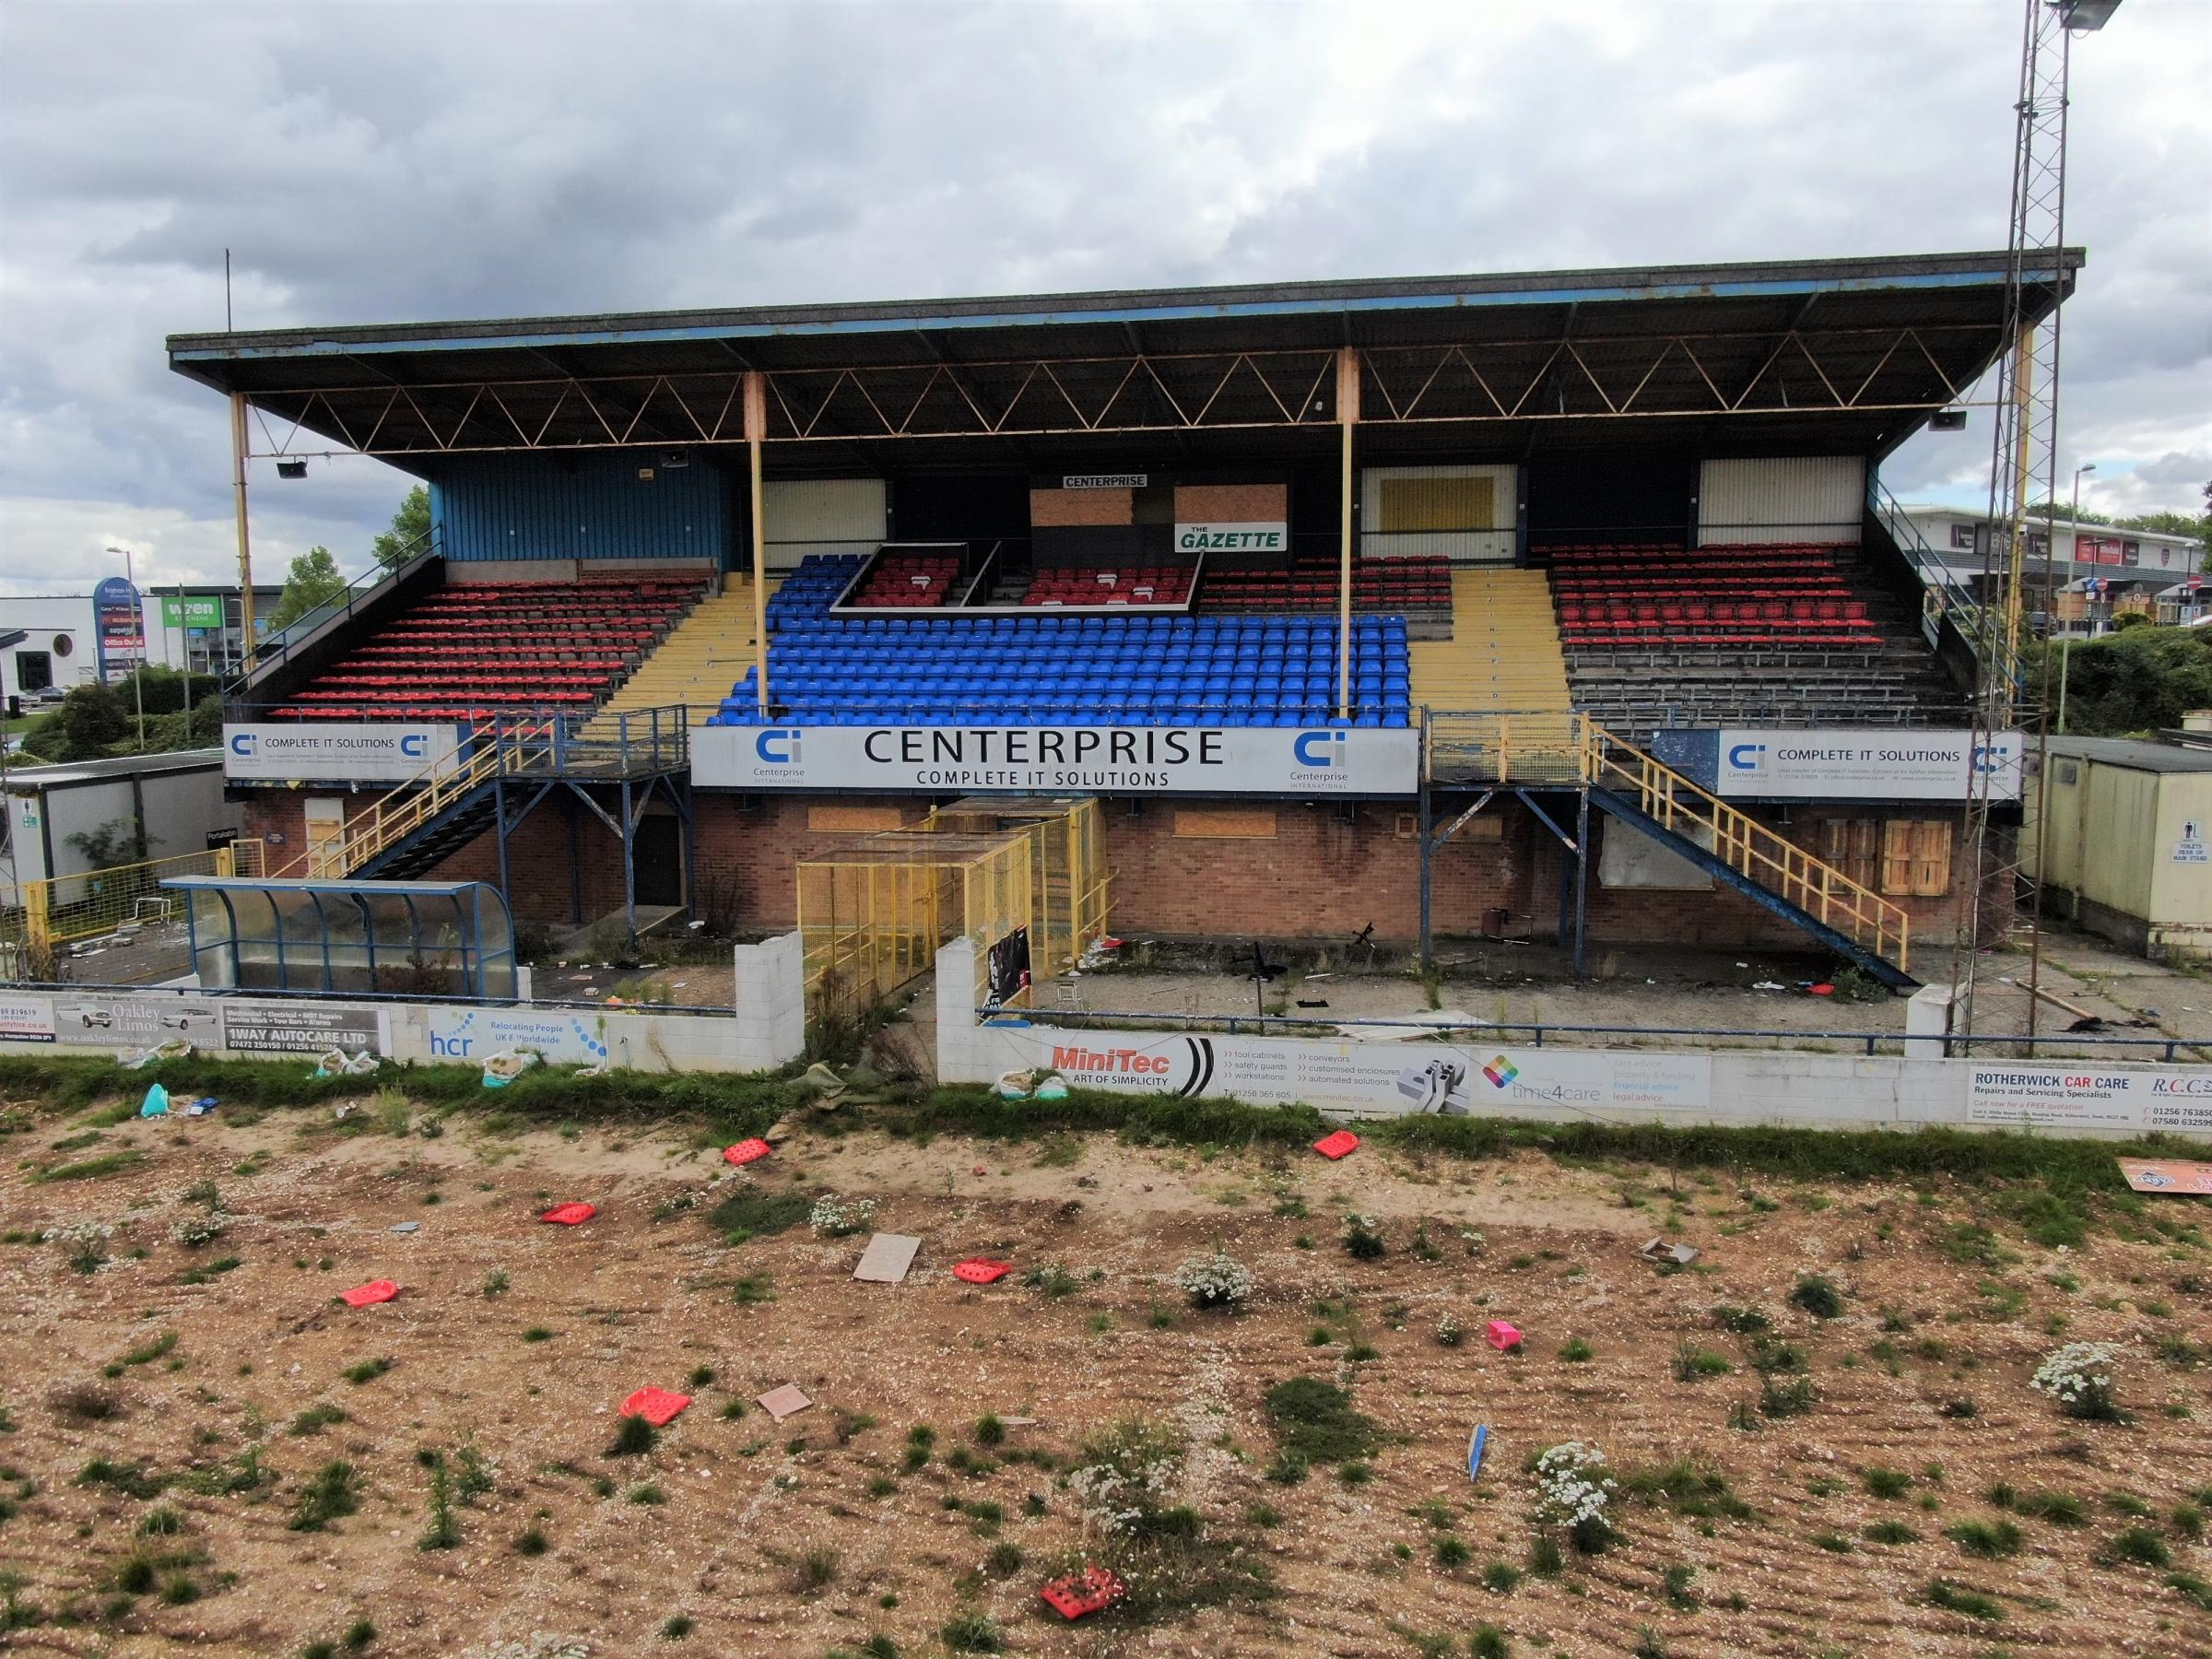 Photos show the Camrose left in a horrendous state. Picture by Simon Hill